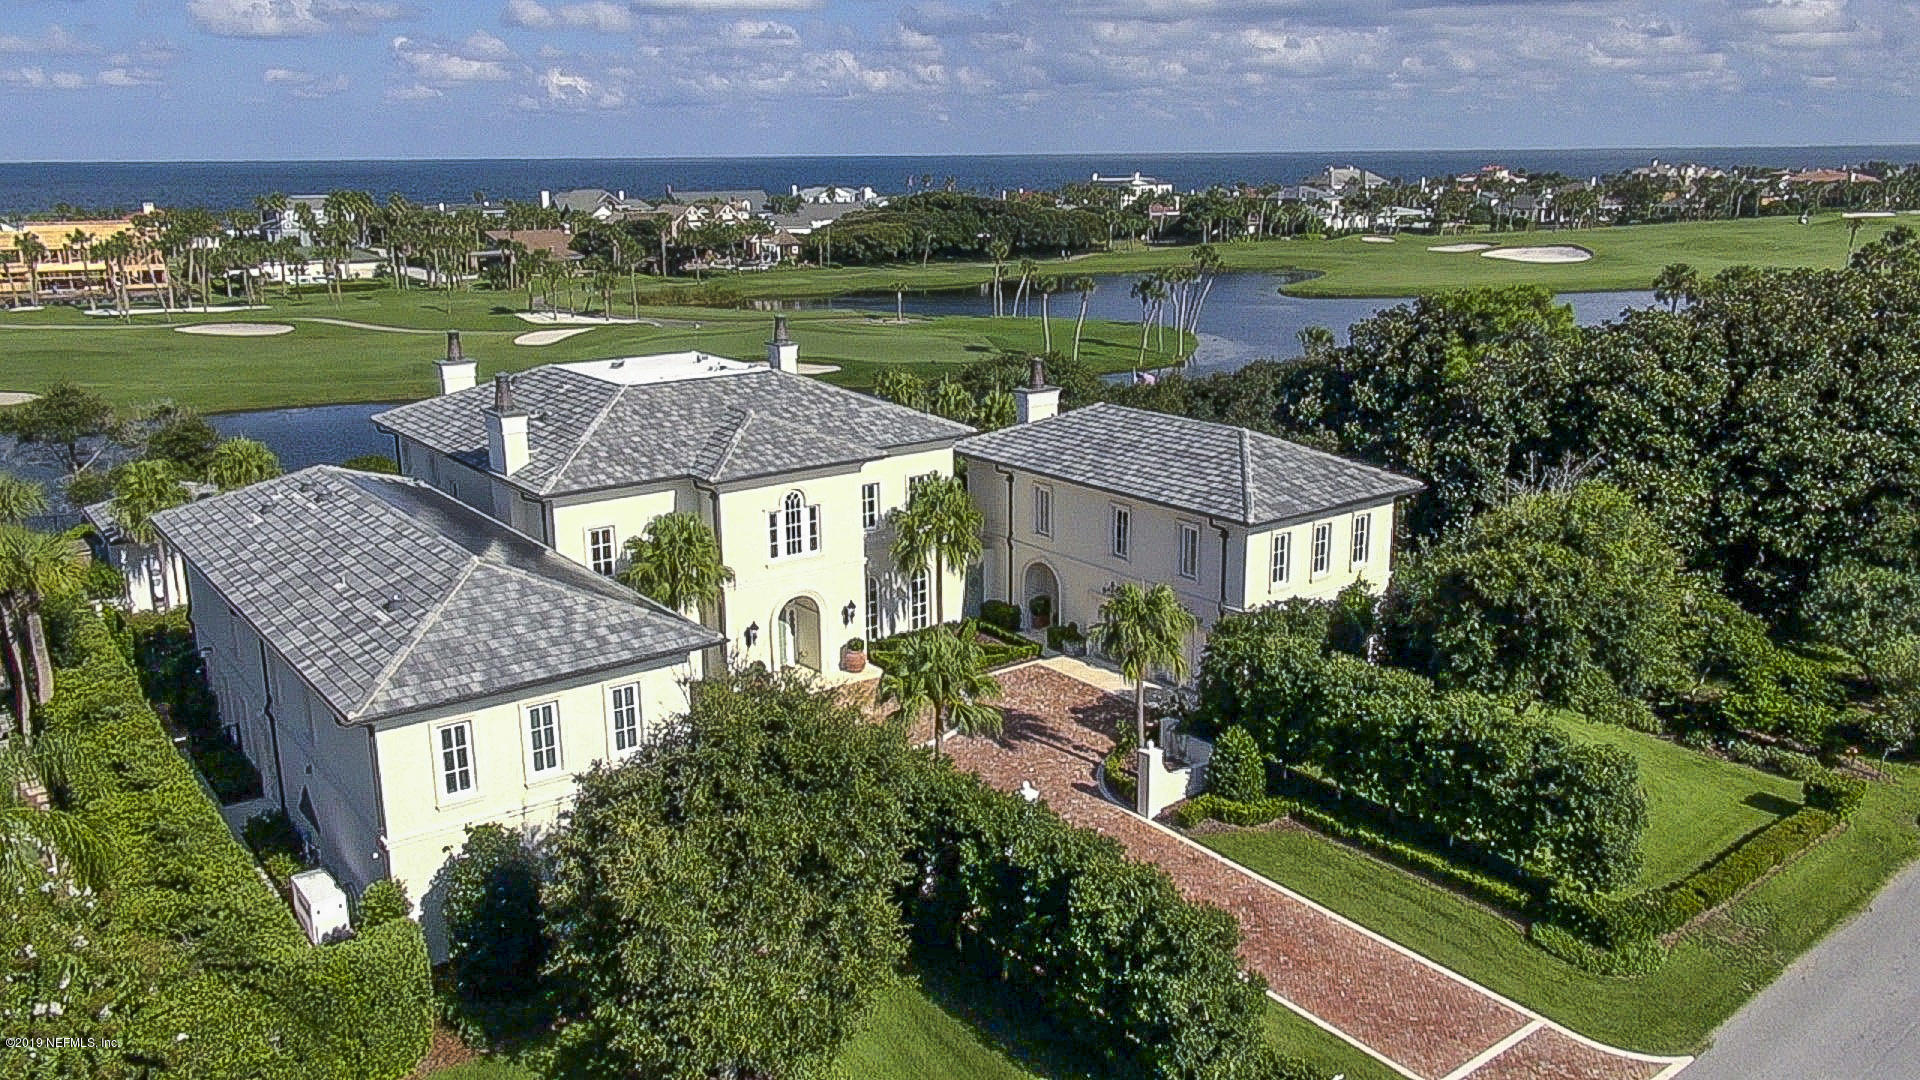 317 SAN JUAN, PONTE VEDRA BEACH, FLORIDA 32082, 8 Bedrooms Bedrooms, ,8 BathroomsBathrooms,Residential - single family,For sale,SAN JUAN,985744